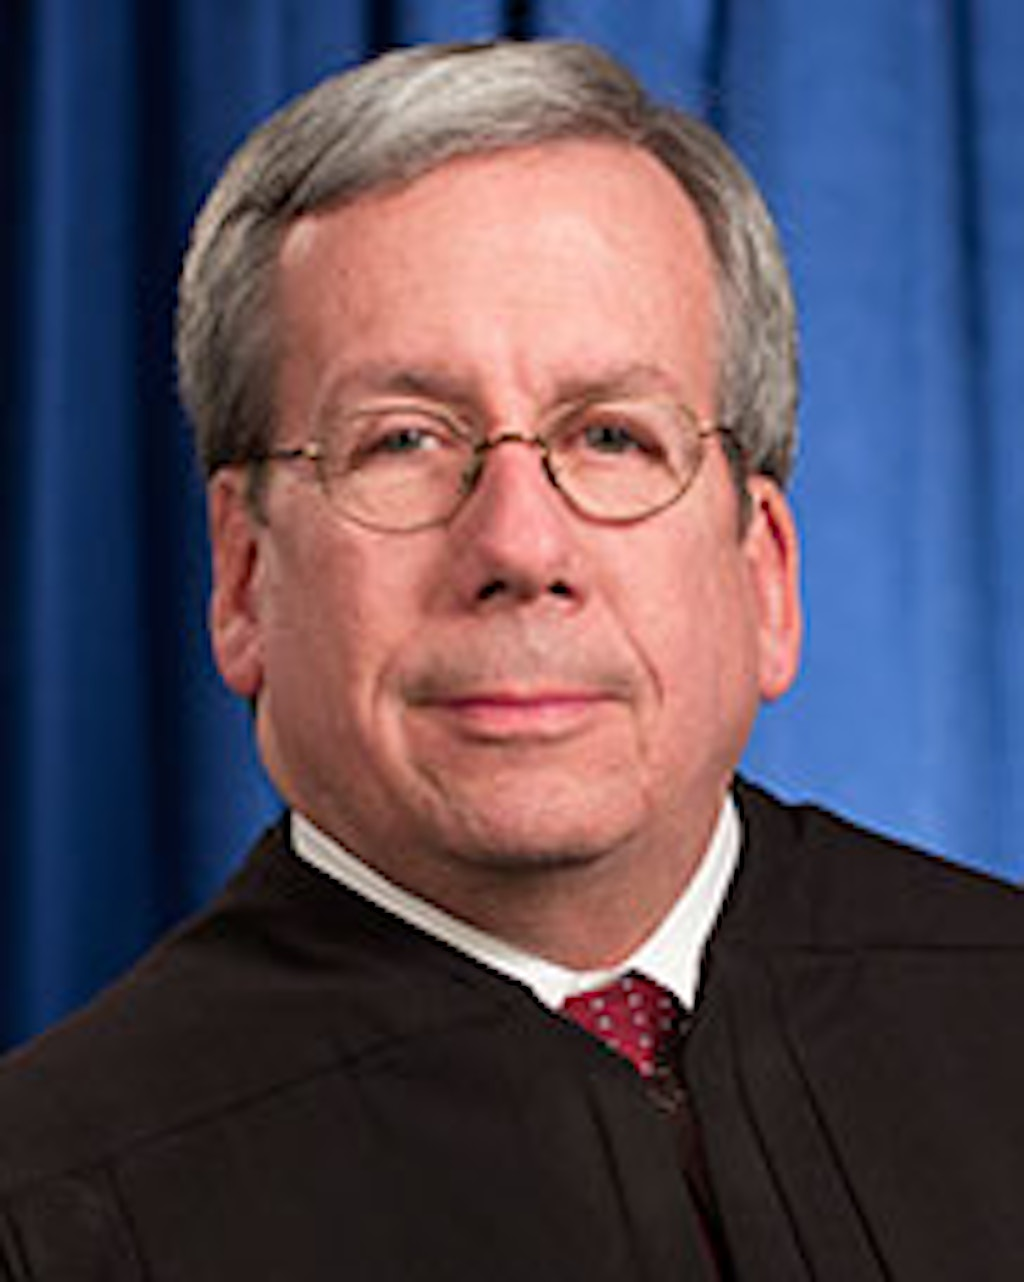 NEW VOICES: Ohio Supreme Court Justice Calls Death Penalty Unconstitutional